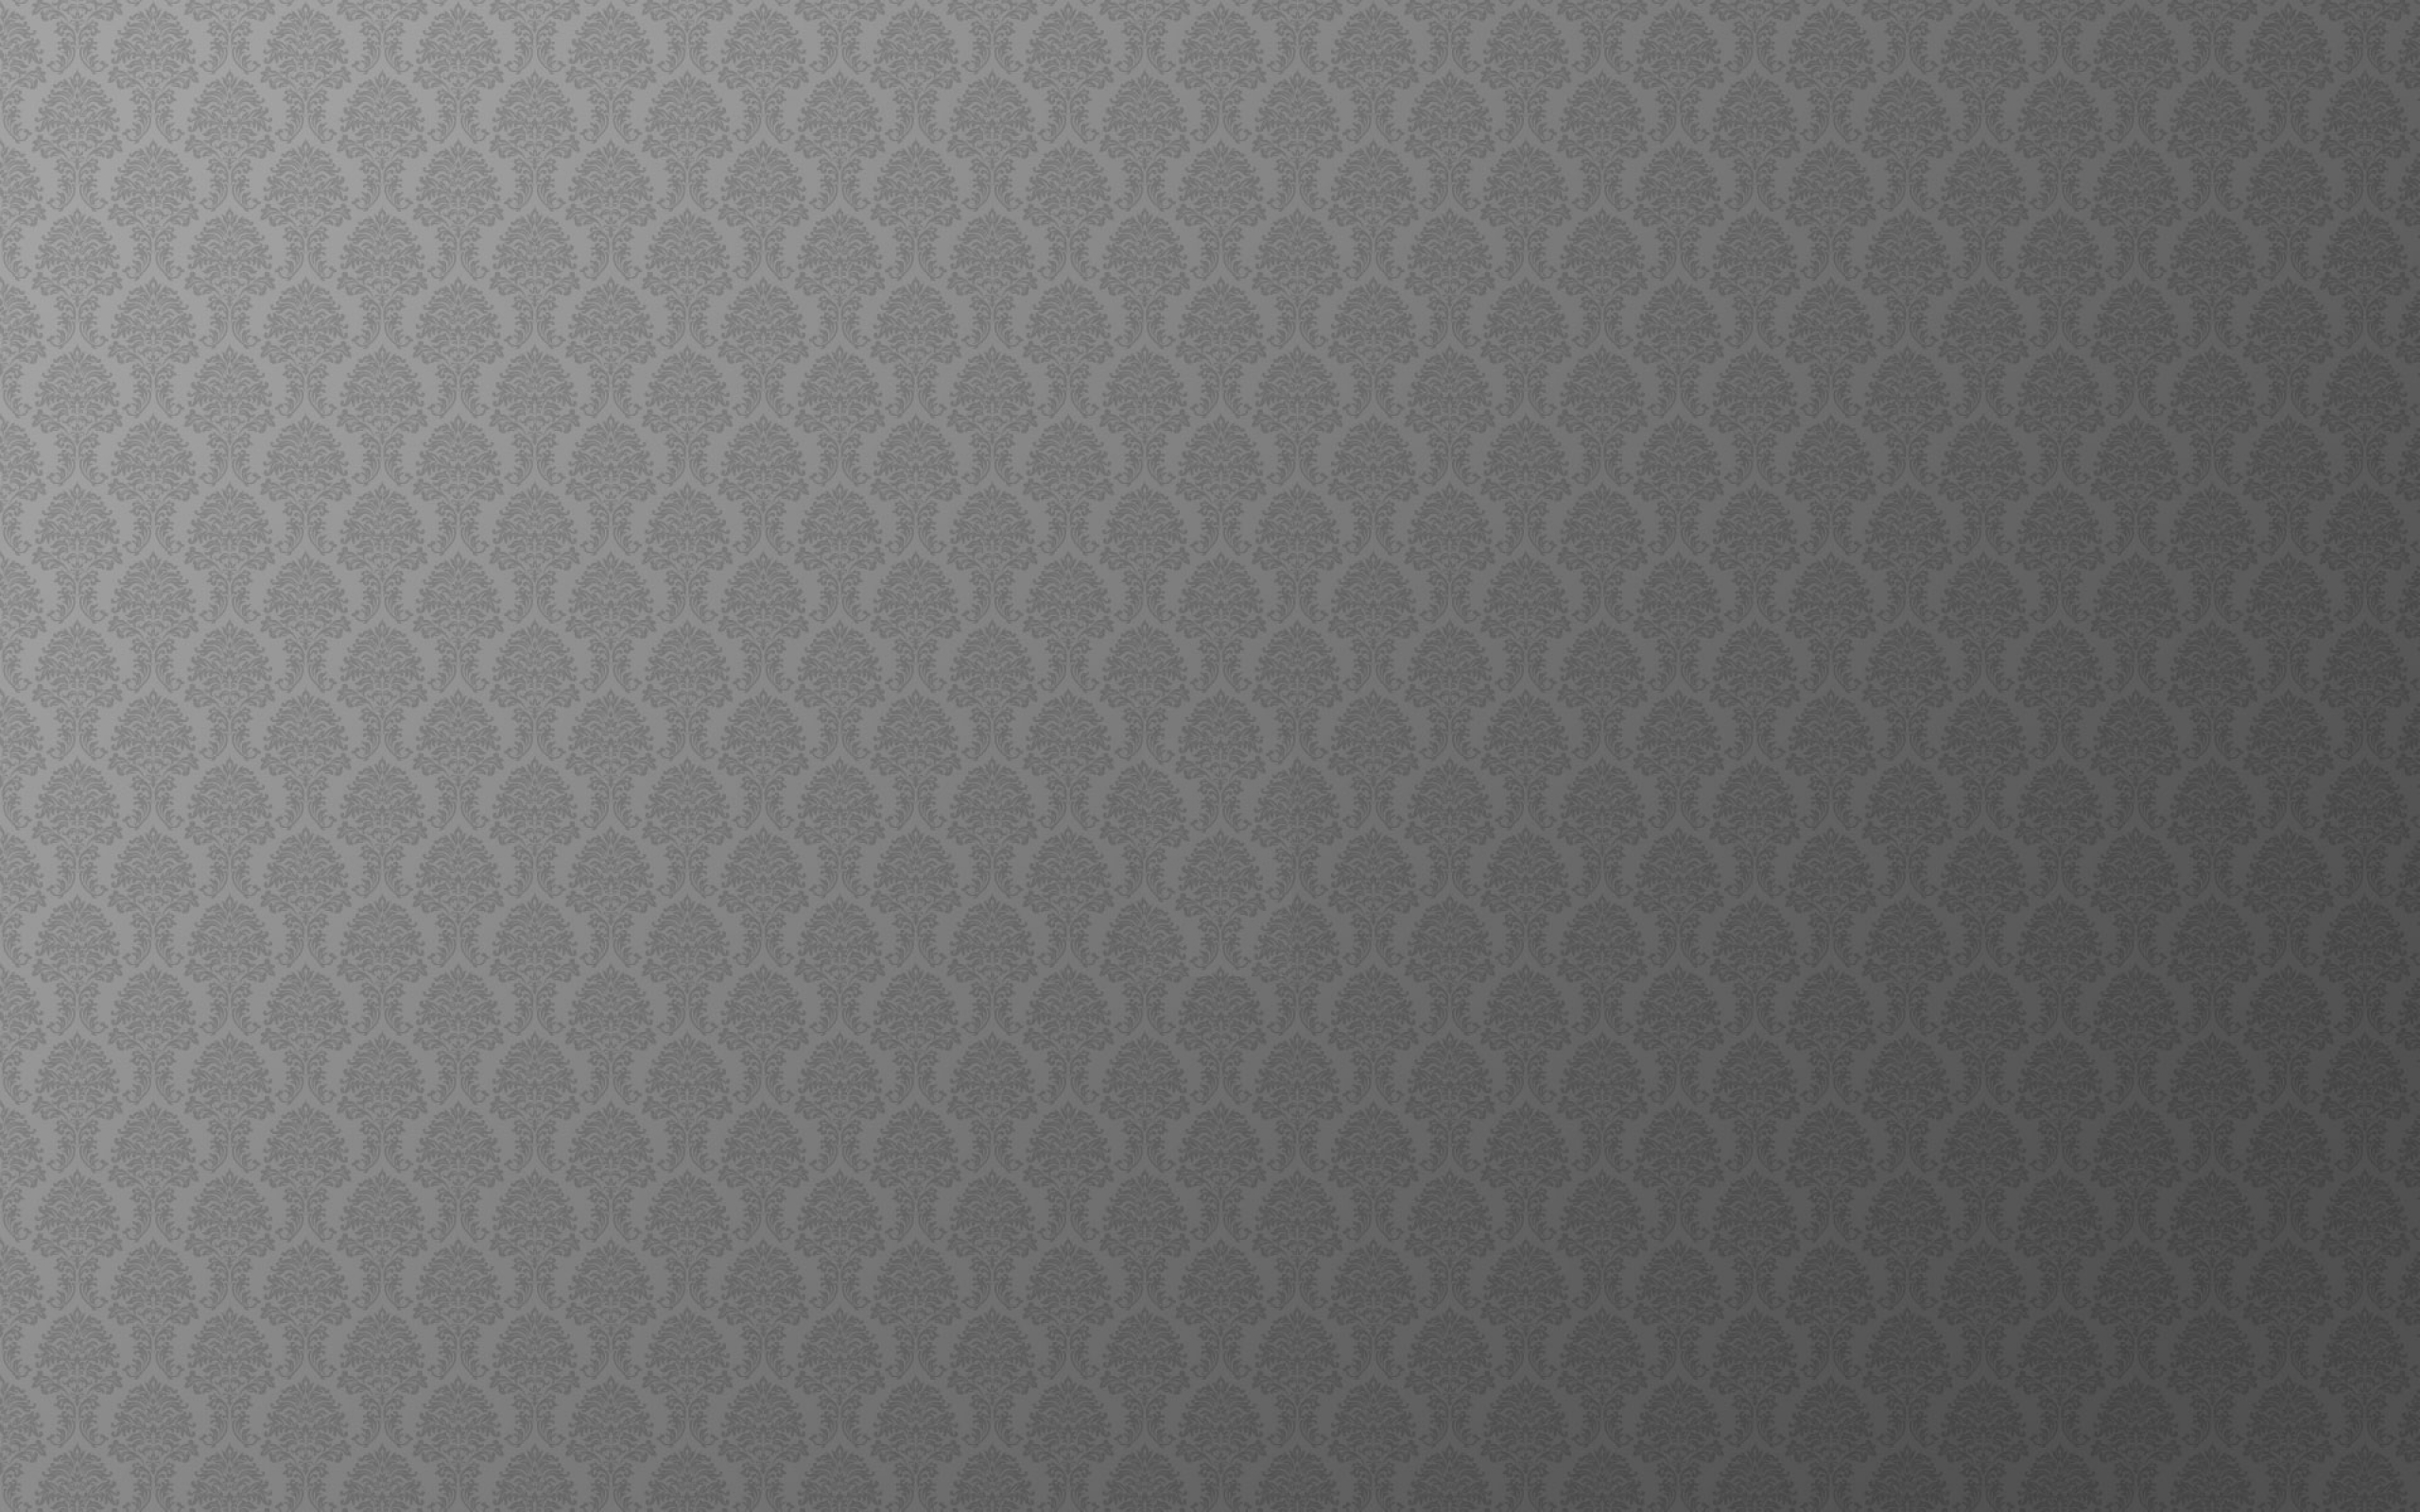 Cheap Black And White Wallpaper Grey Full Hd Wallpaper And Background 2560x1600 Id 373253